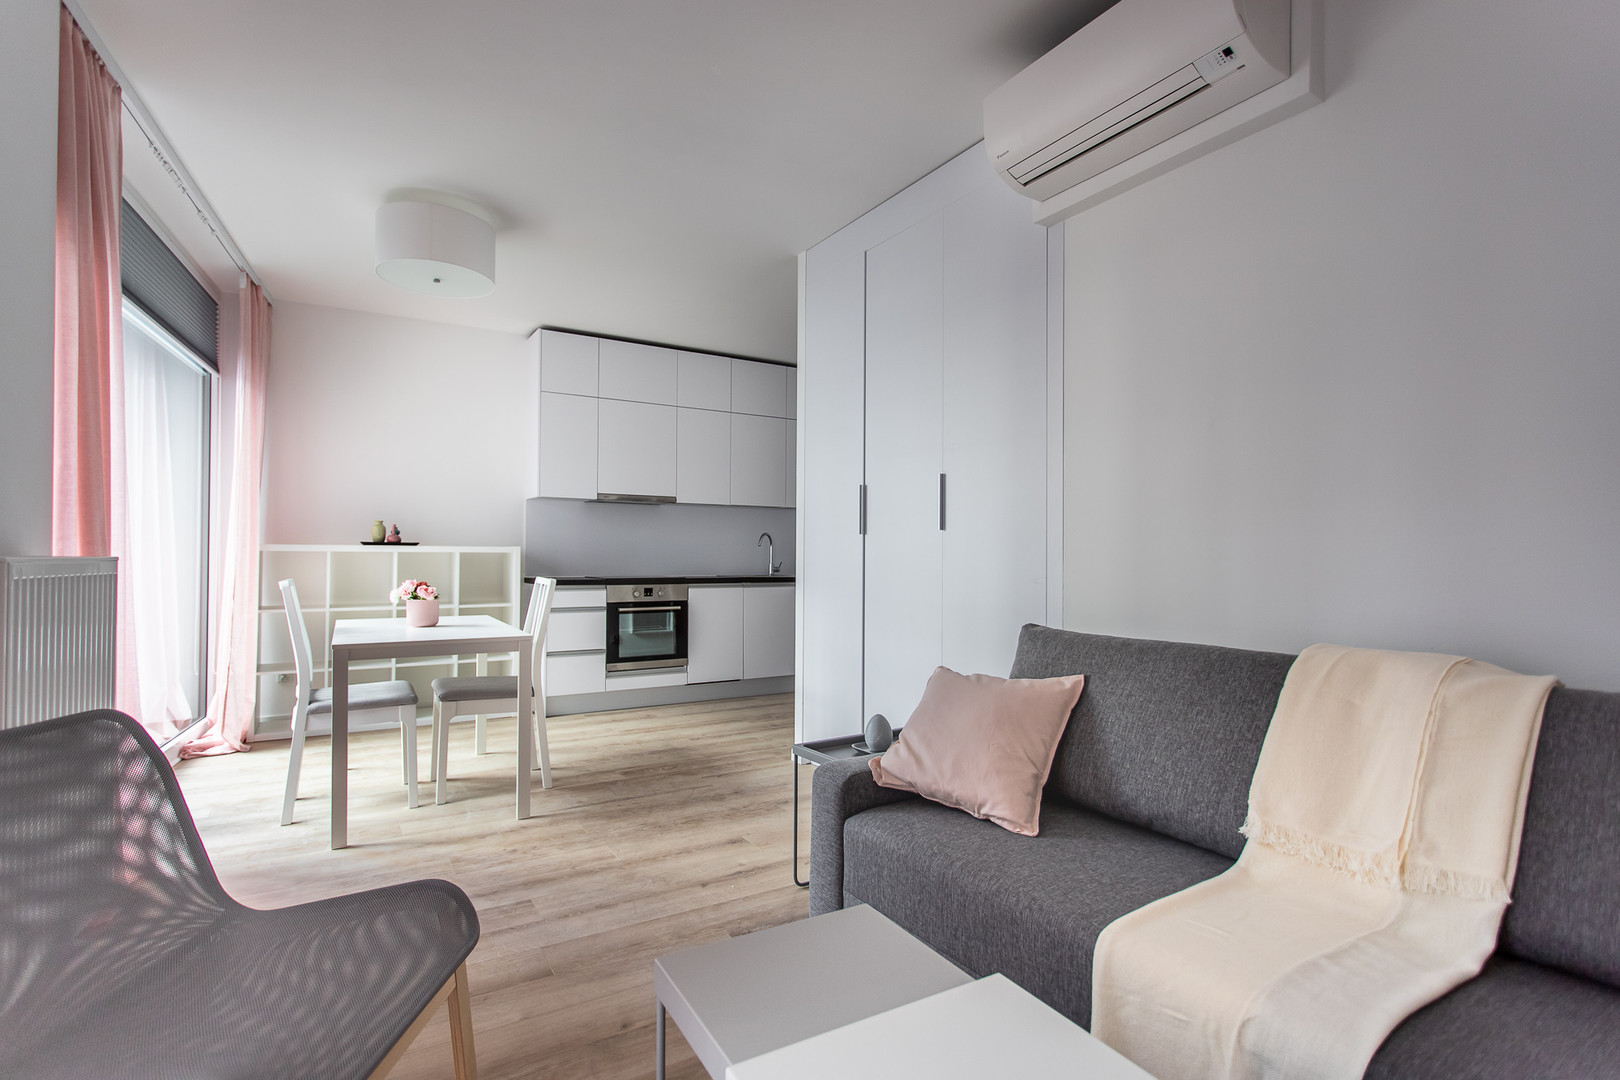 Wrasaw Wola Office Apartments for rent_2